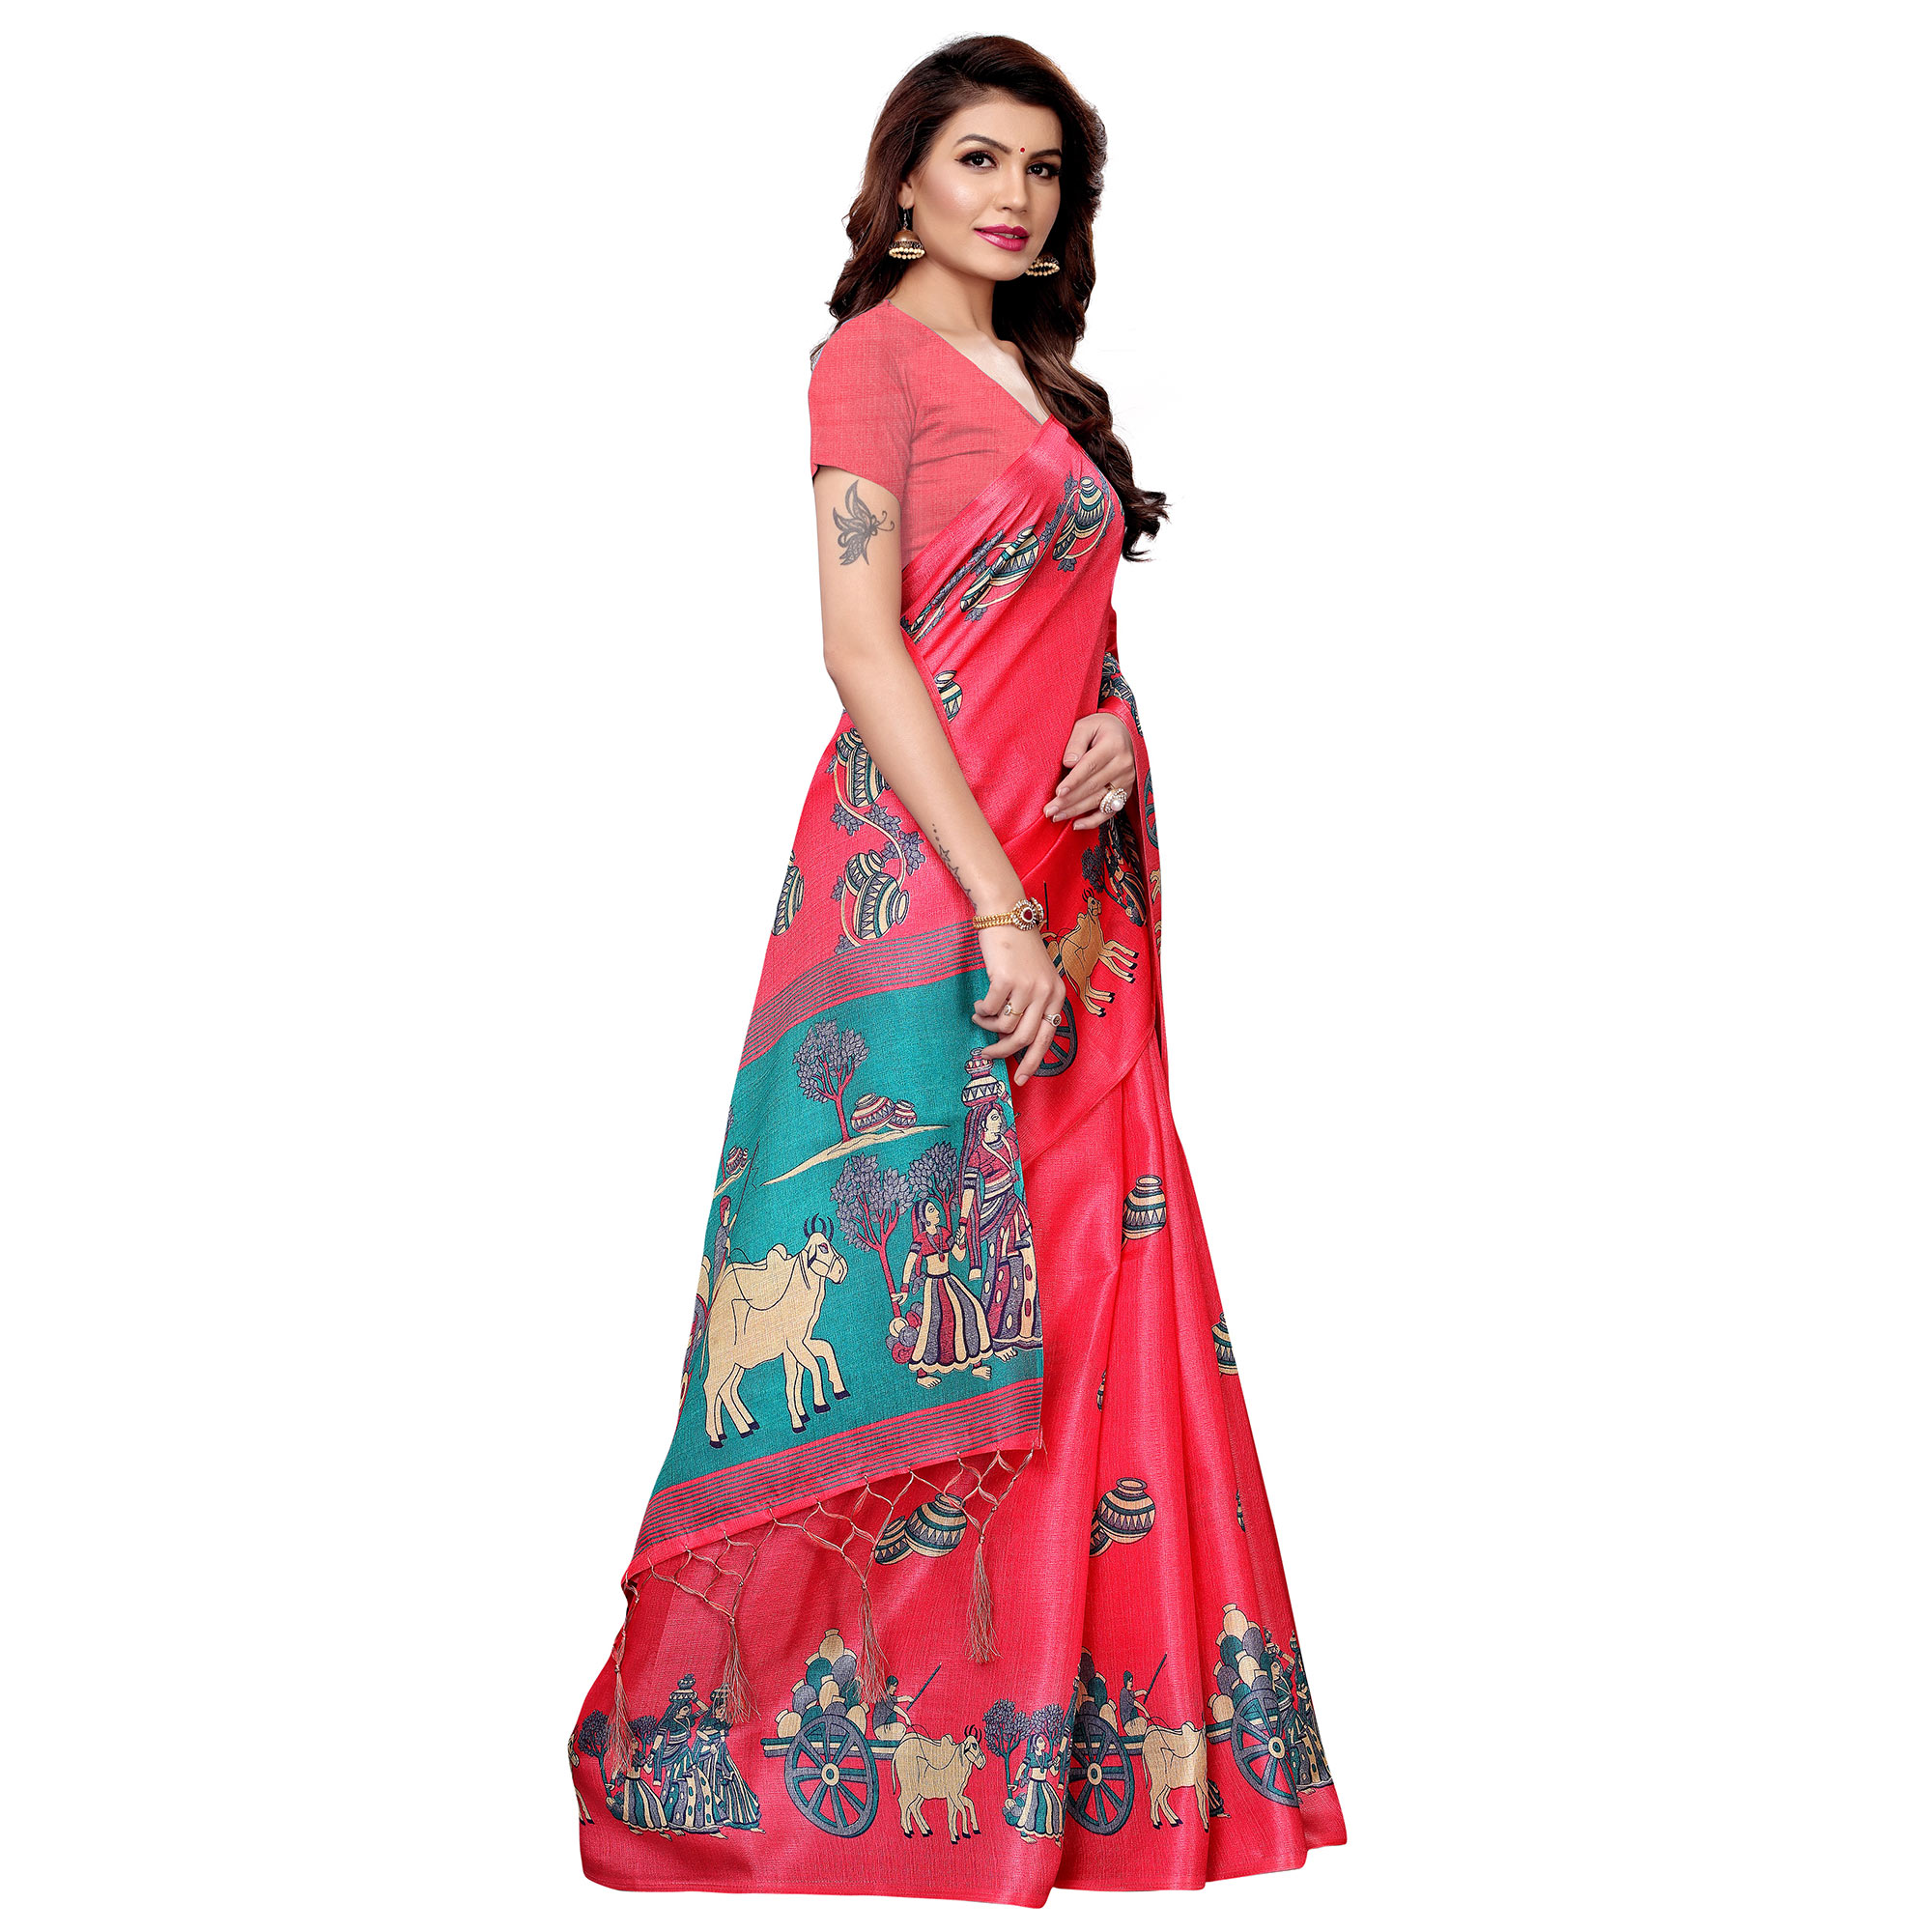 Pleasance Pink Colored Festive Wear Printed Art Silk Saree